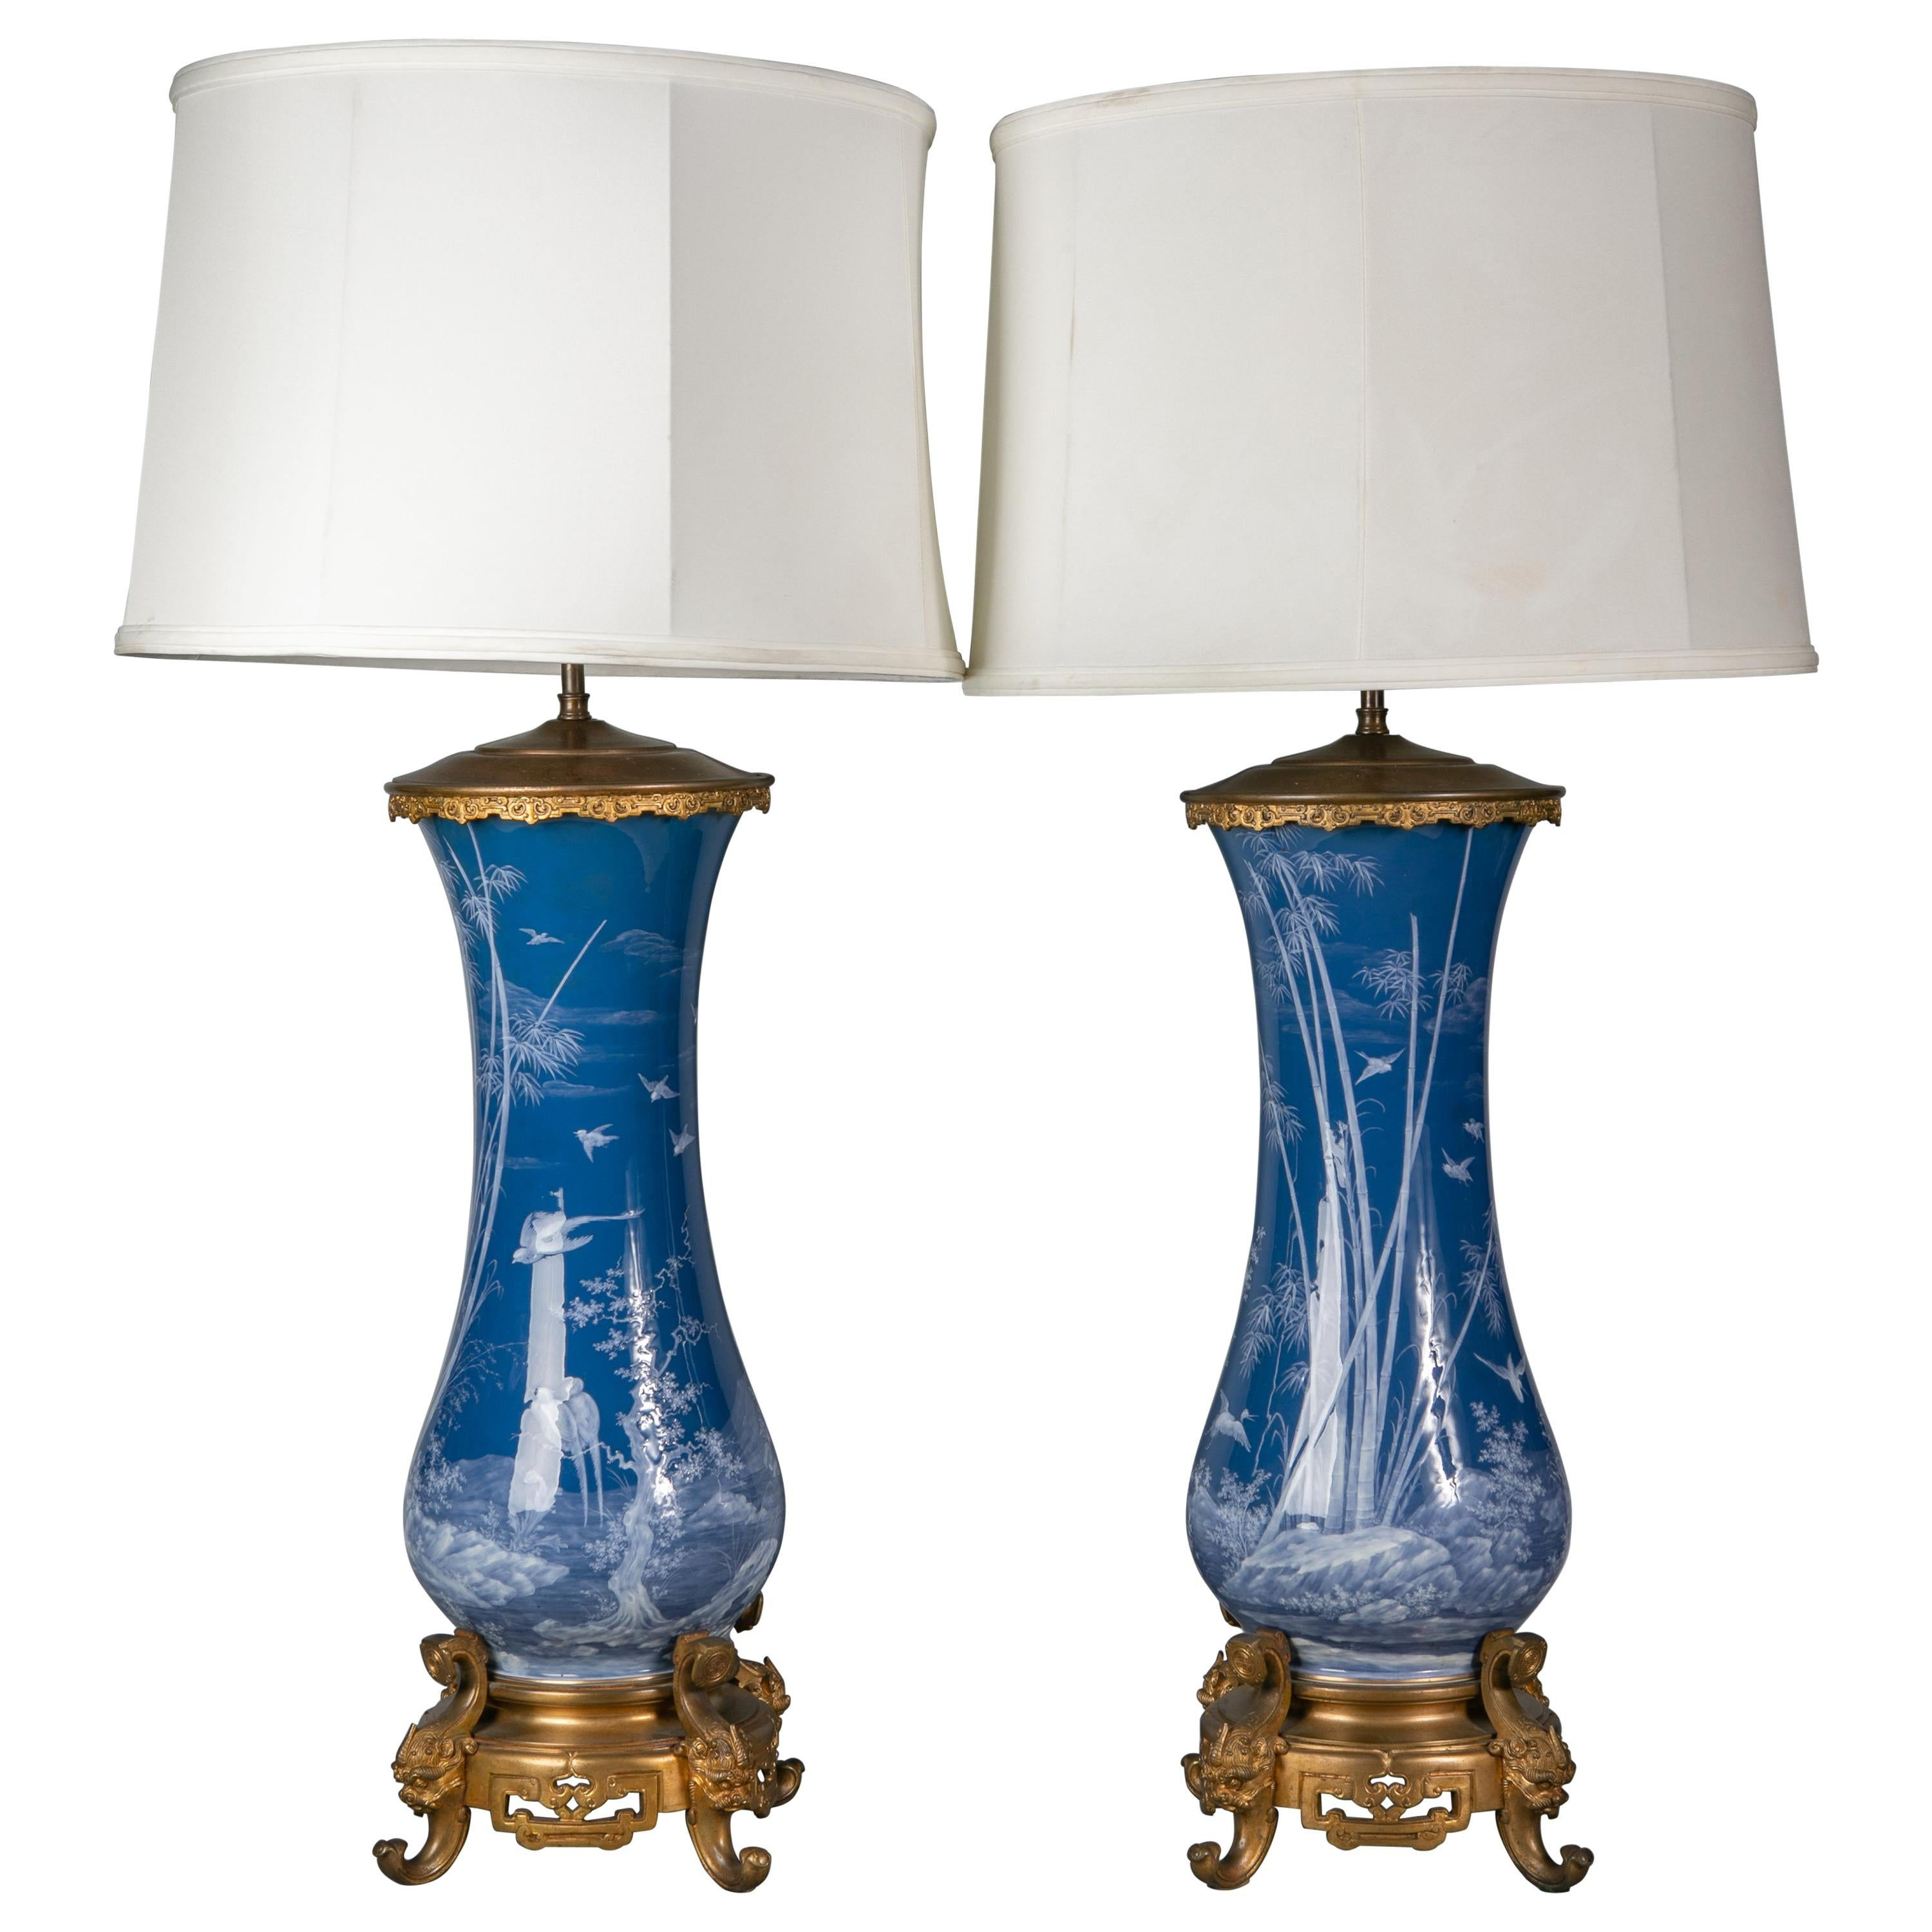 Pair of French Pate-Sur-Pate Vases Mounted as Lamps, circa 1880